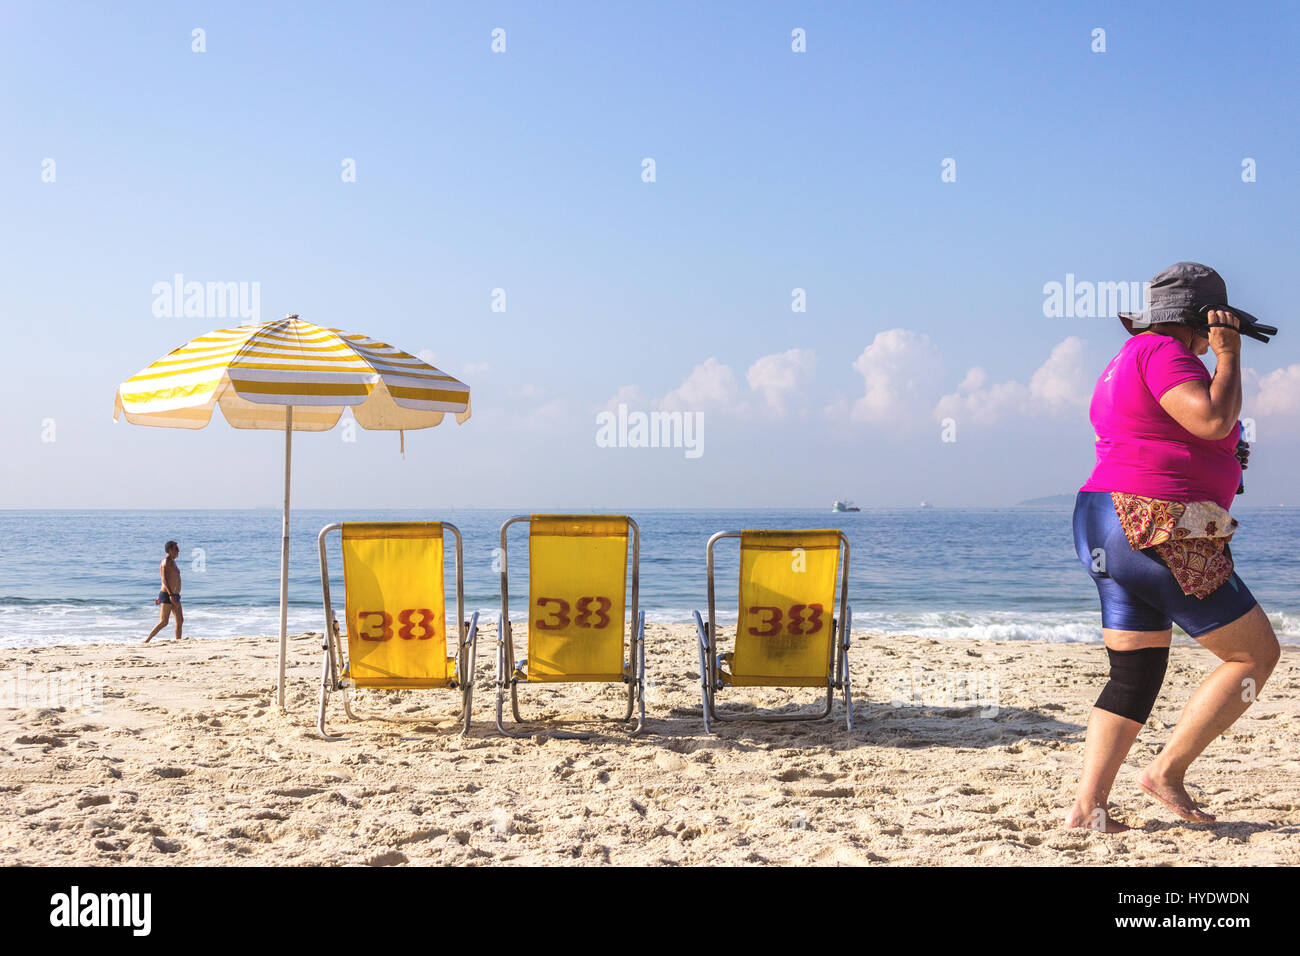 Brazil, Rio de Janeiro: Woman walking on Leme beach and yellow umbrella and chairs - Stock Image